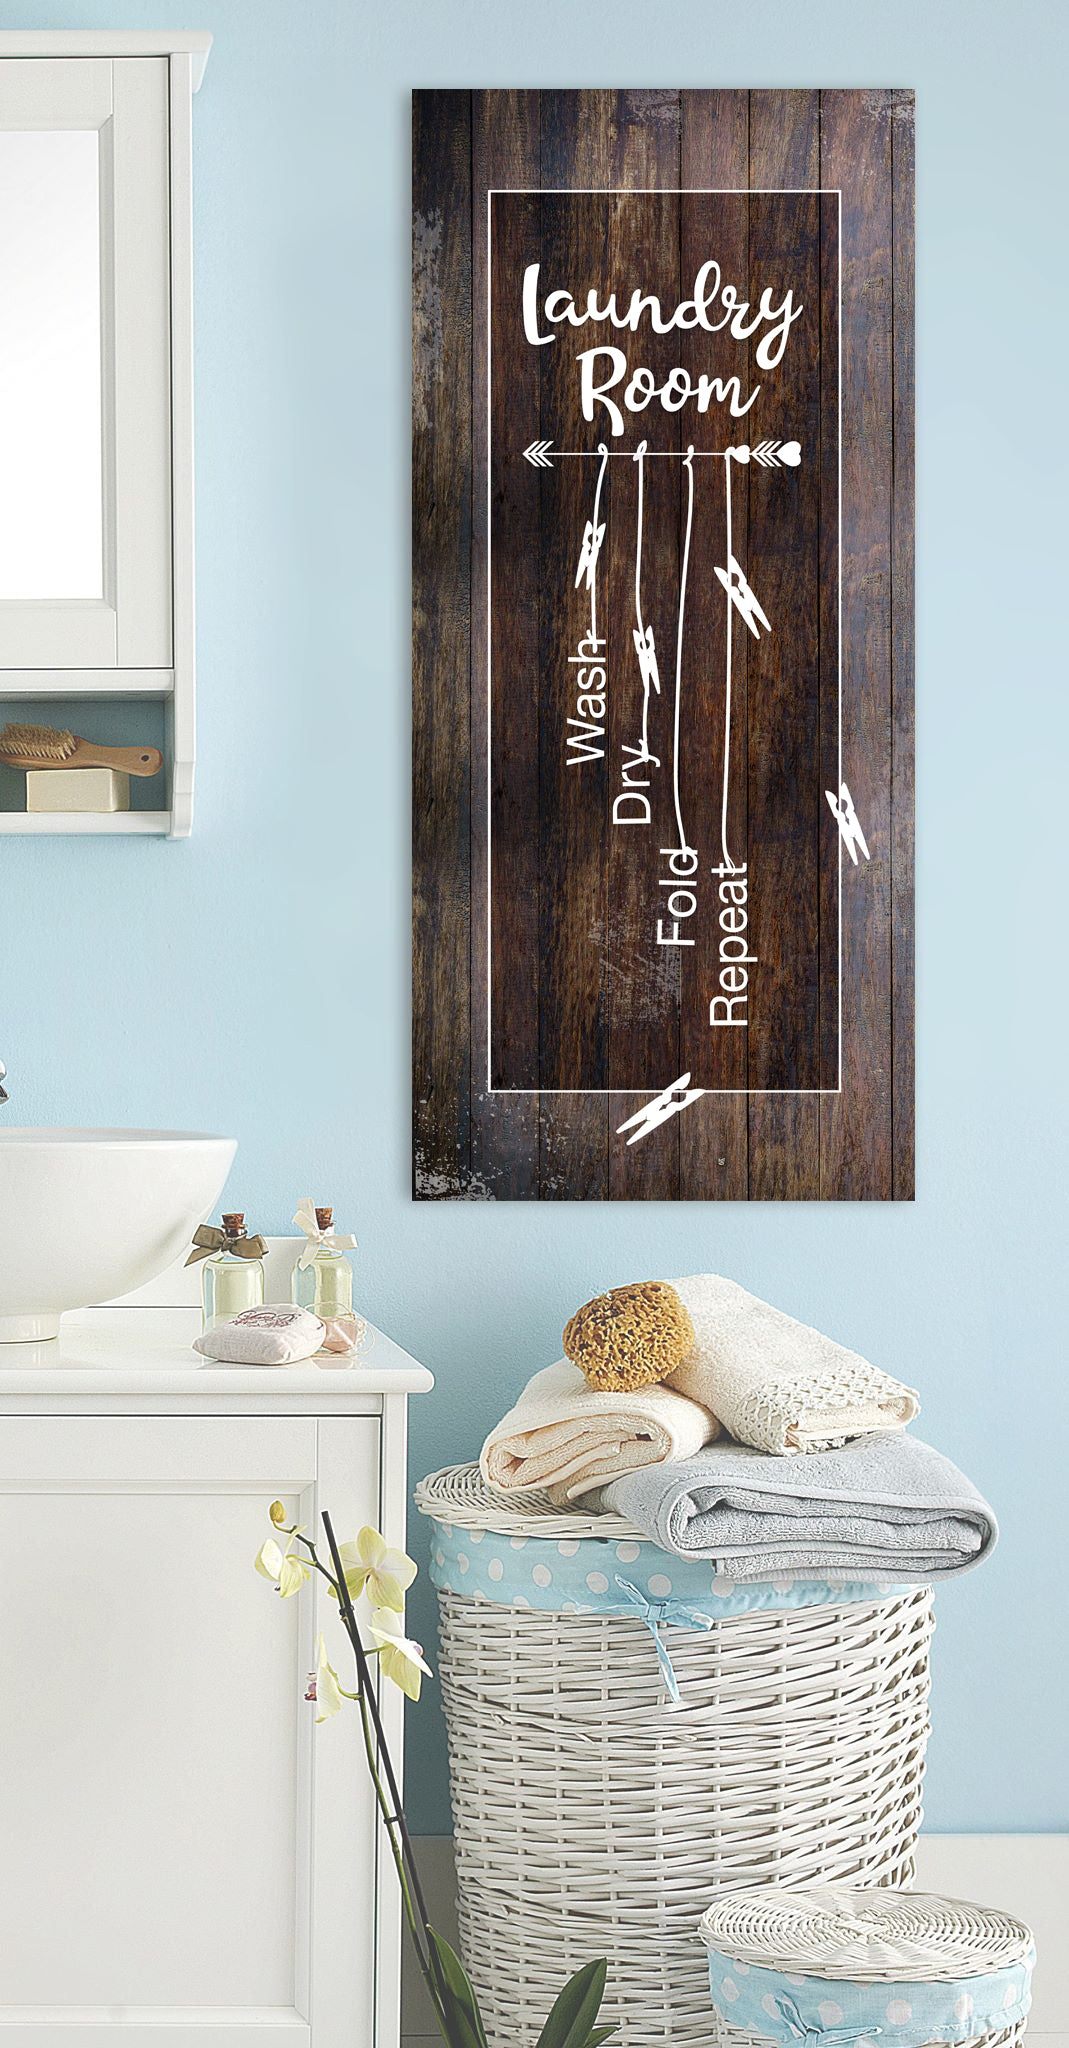 Laundry Room Wall Art: Laundry Room (Wood Frame Ready To Hang)